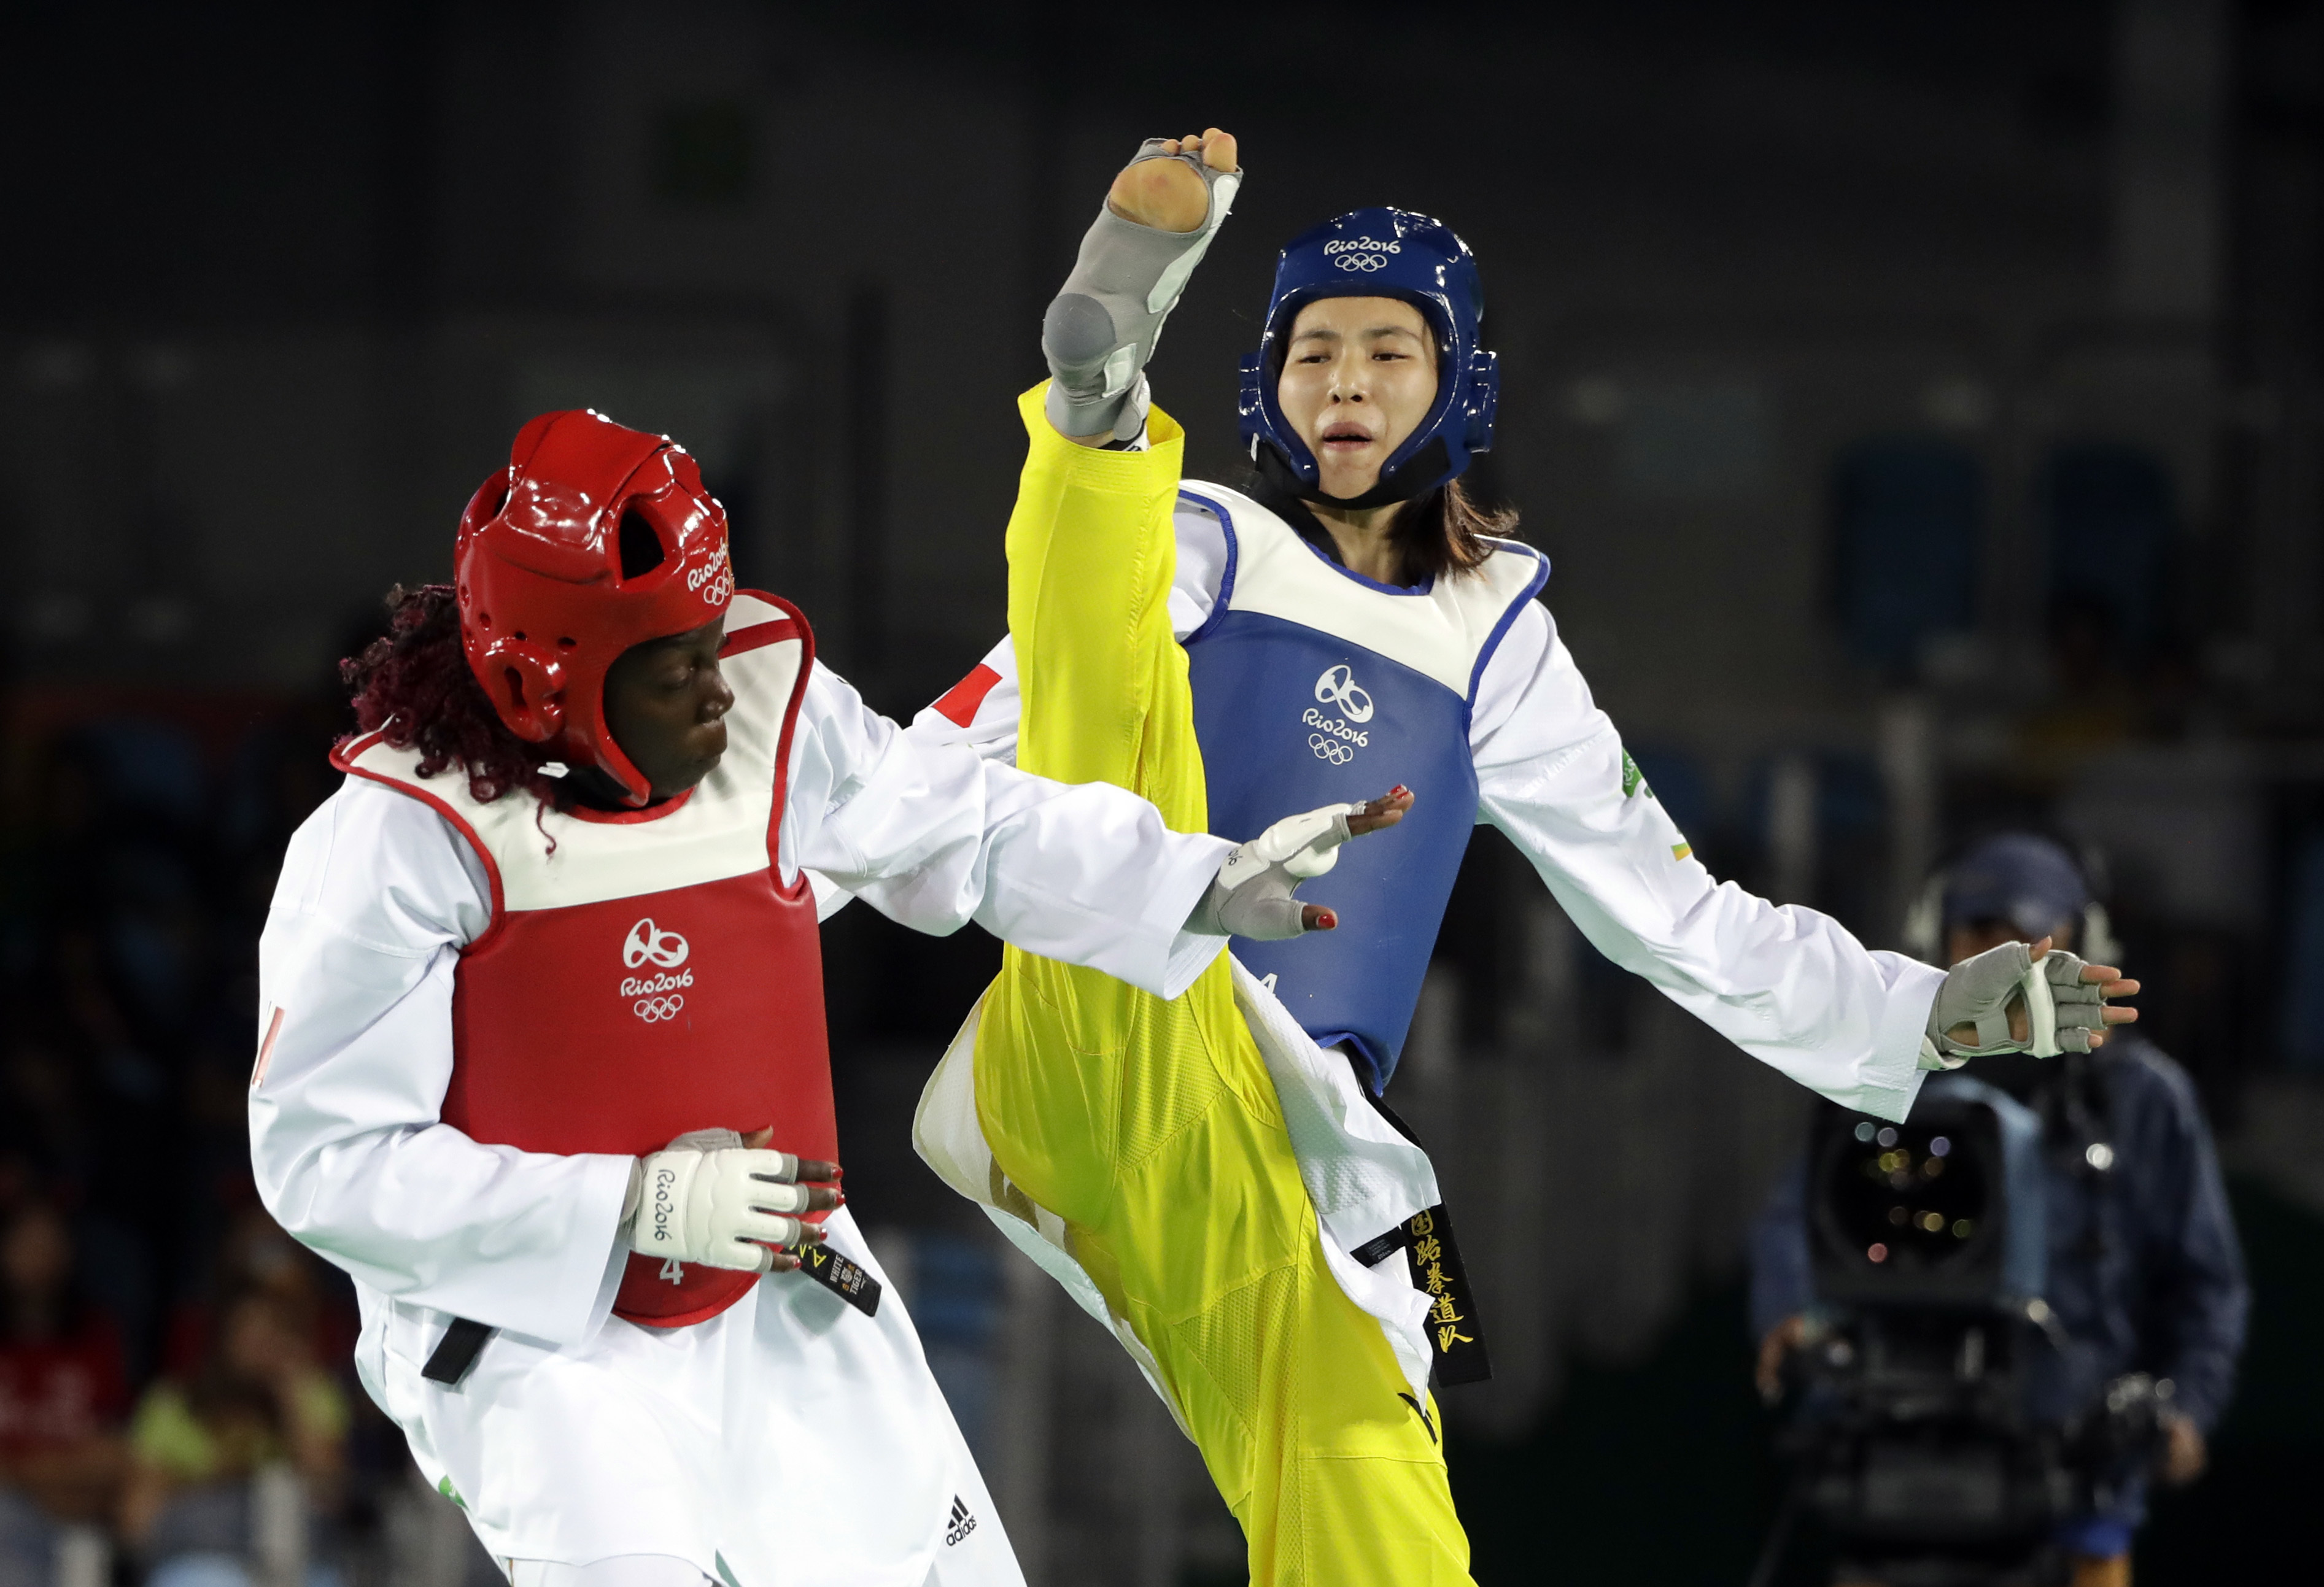 Zheng Shuyin of China, right, and Gwladys Epangue of France compete in a women's over 67-kg quarterfinal Taekwondo event at the 2016 Summer Olympics in Rio de Janeiro, Brazil, Saturday, Aug. 20, 2016. (AP Photo/Marcio Jose Sanchez)